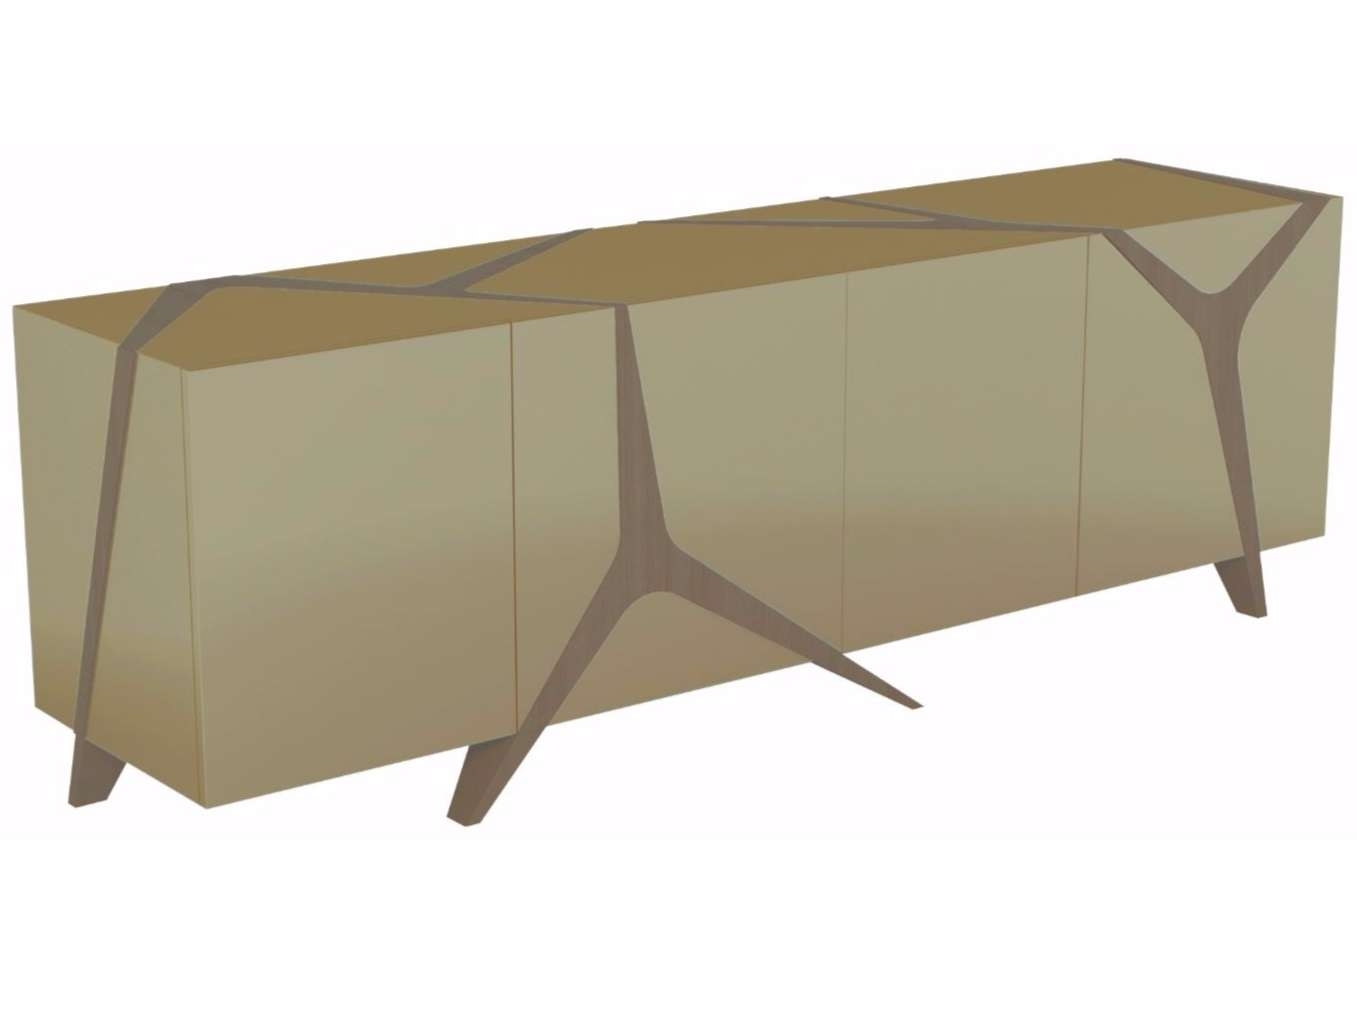 Rosace | Sideboard Les Contemporains Collectionroche Bobois In Roche Bobois Sideboards (View 5 of 20)